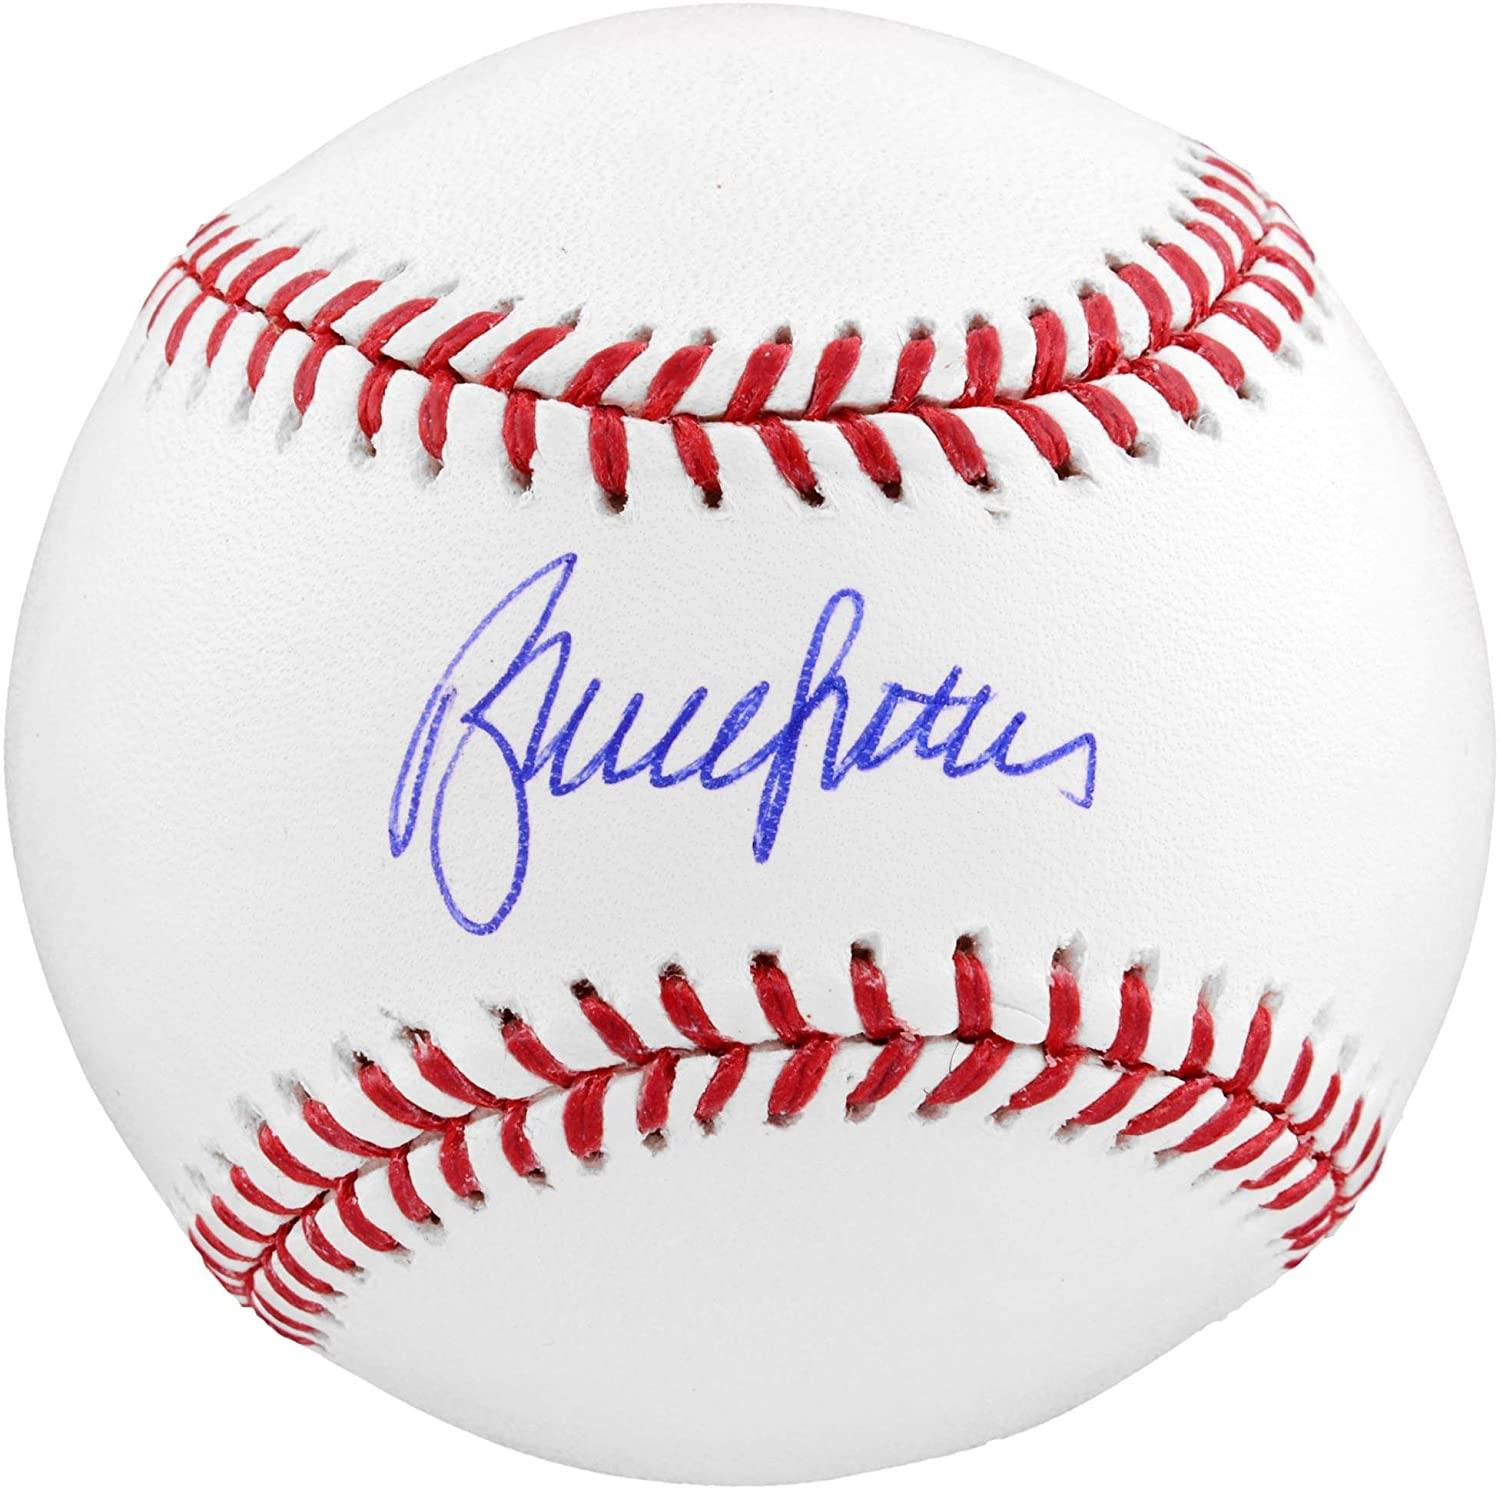 f5d4c6fbd9e Bruce Sutter Chicago Cubs Autographed Baseball - Fanatics Authentic  Certified - Autographed Baseballs at Amazon's Sports Collectibles Store